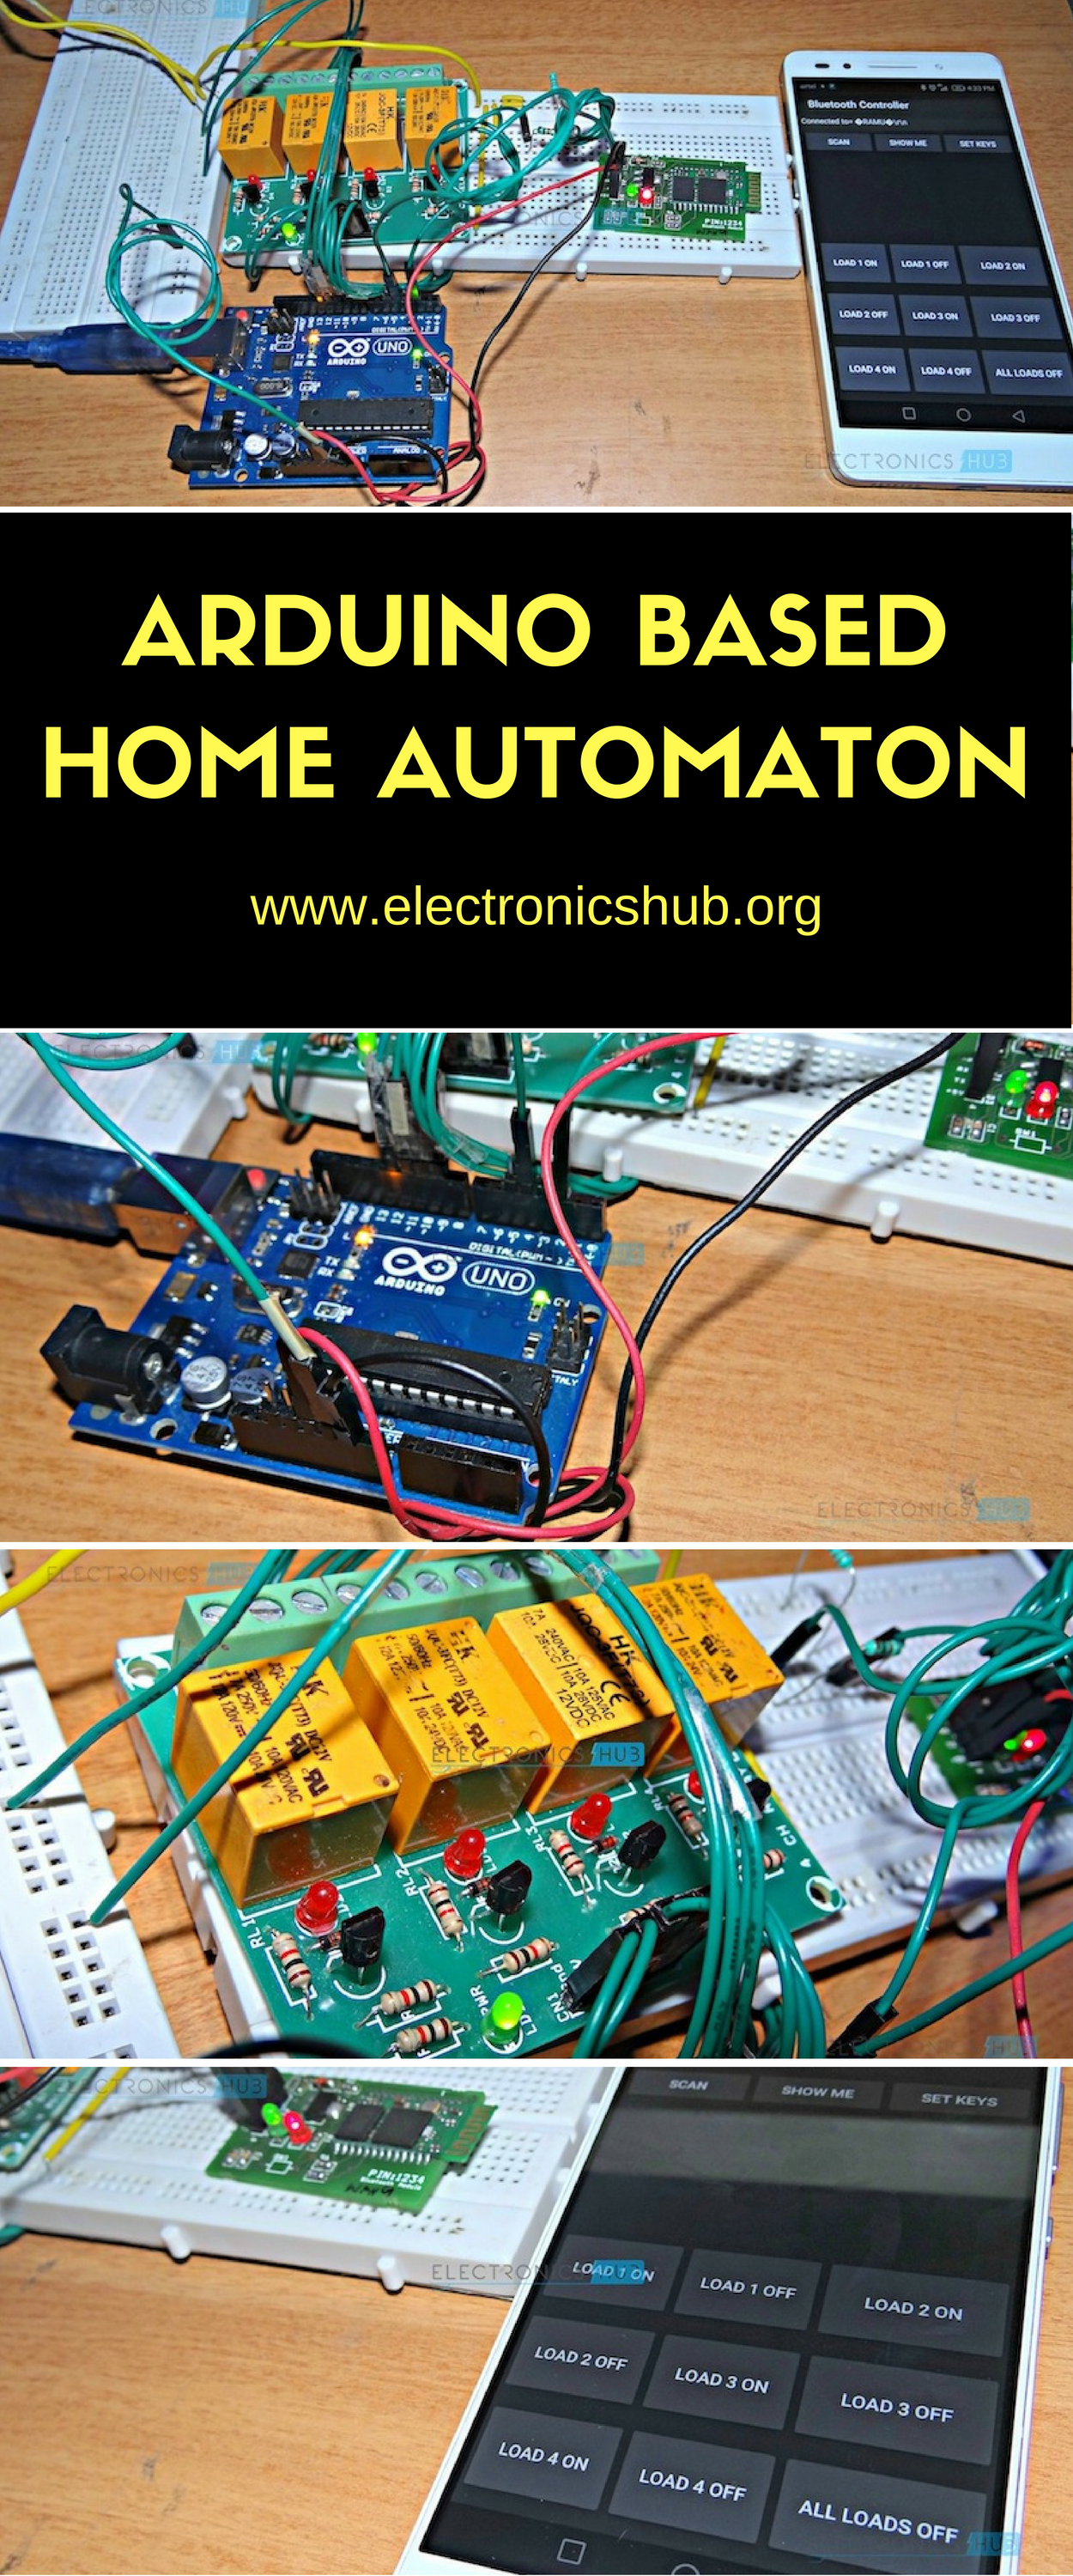 Home Automation Project Using Arduino Pdf Free Shipping New Bluetooth Based Circuits4youcom How To Make Via